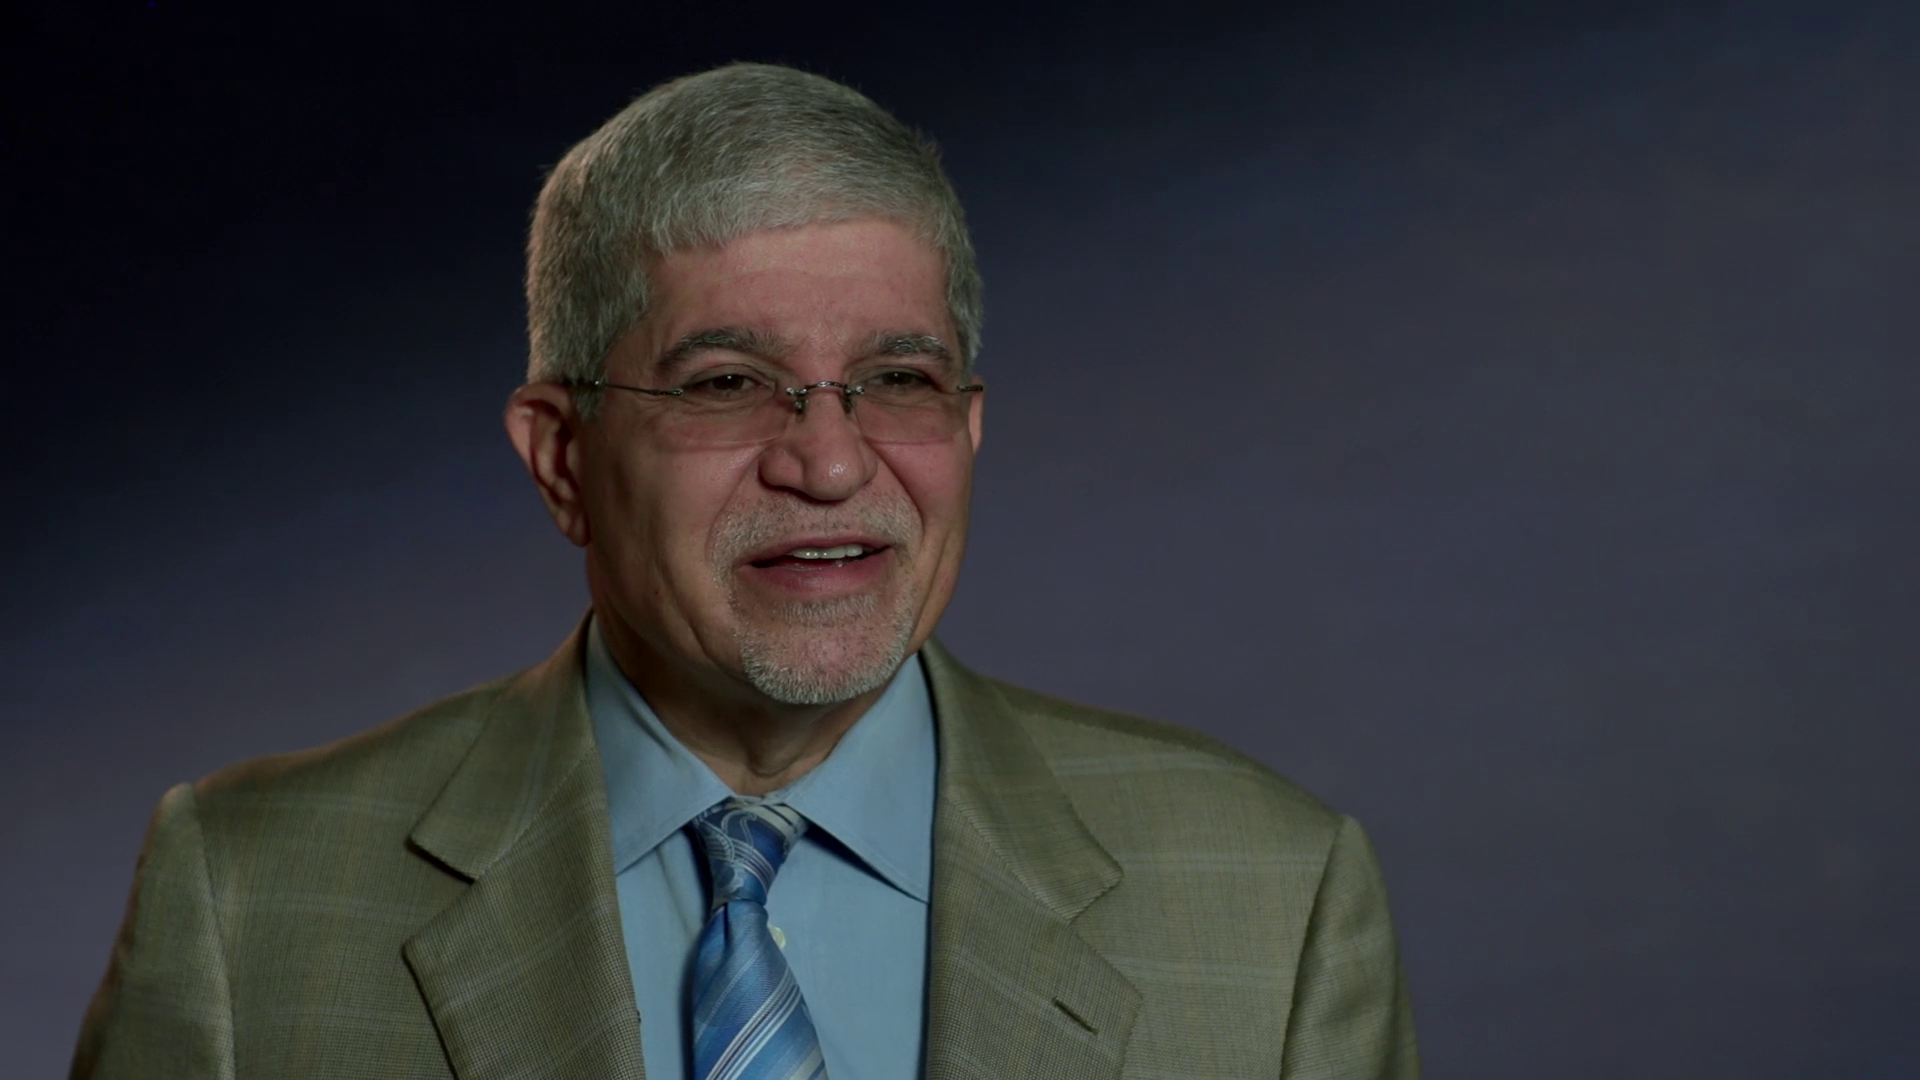 Dr. Chedid talks about his practice